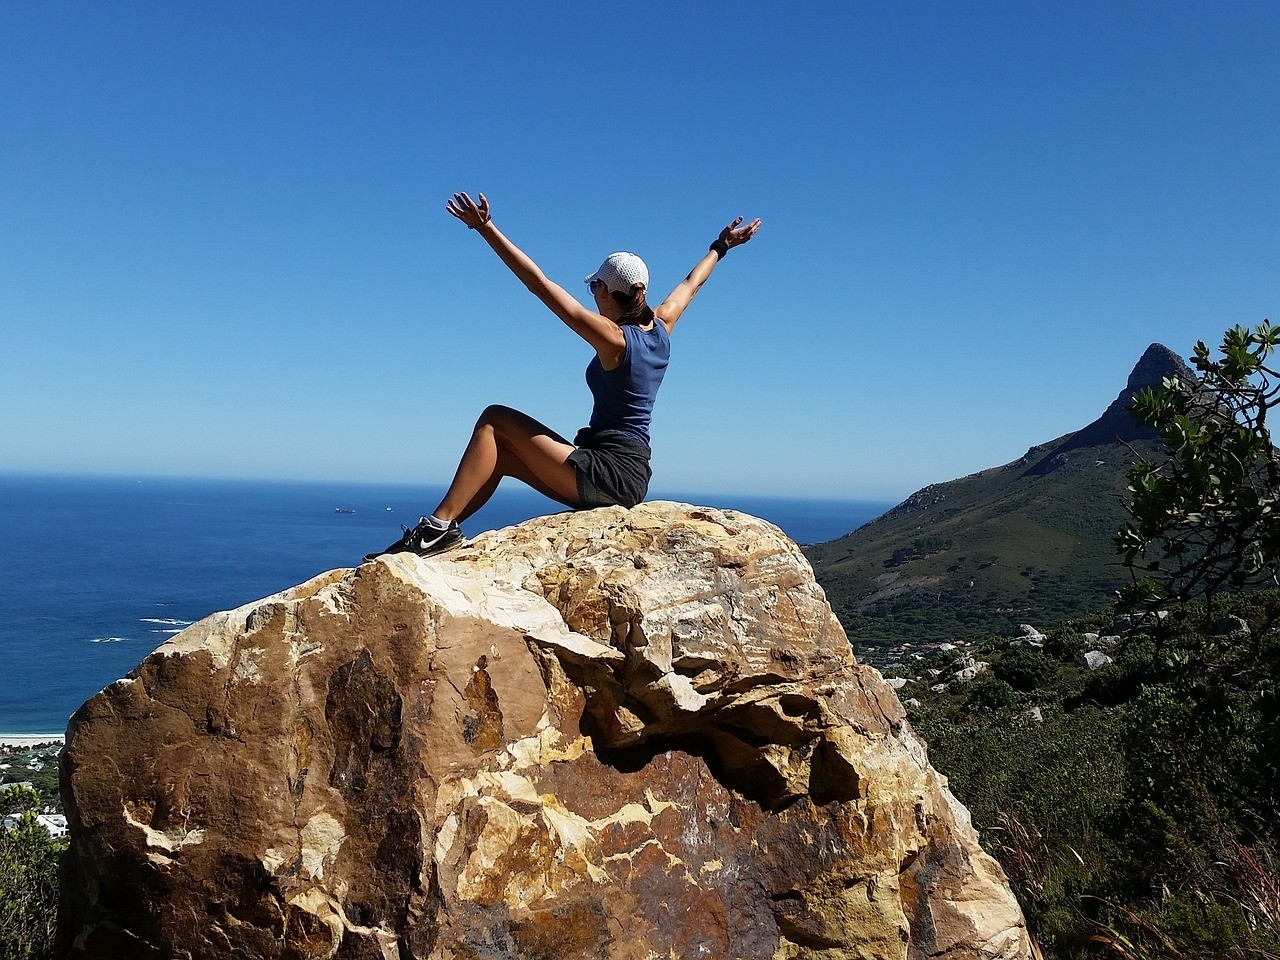 South Africa safe for solo female travellers